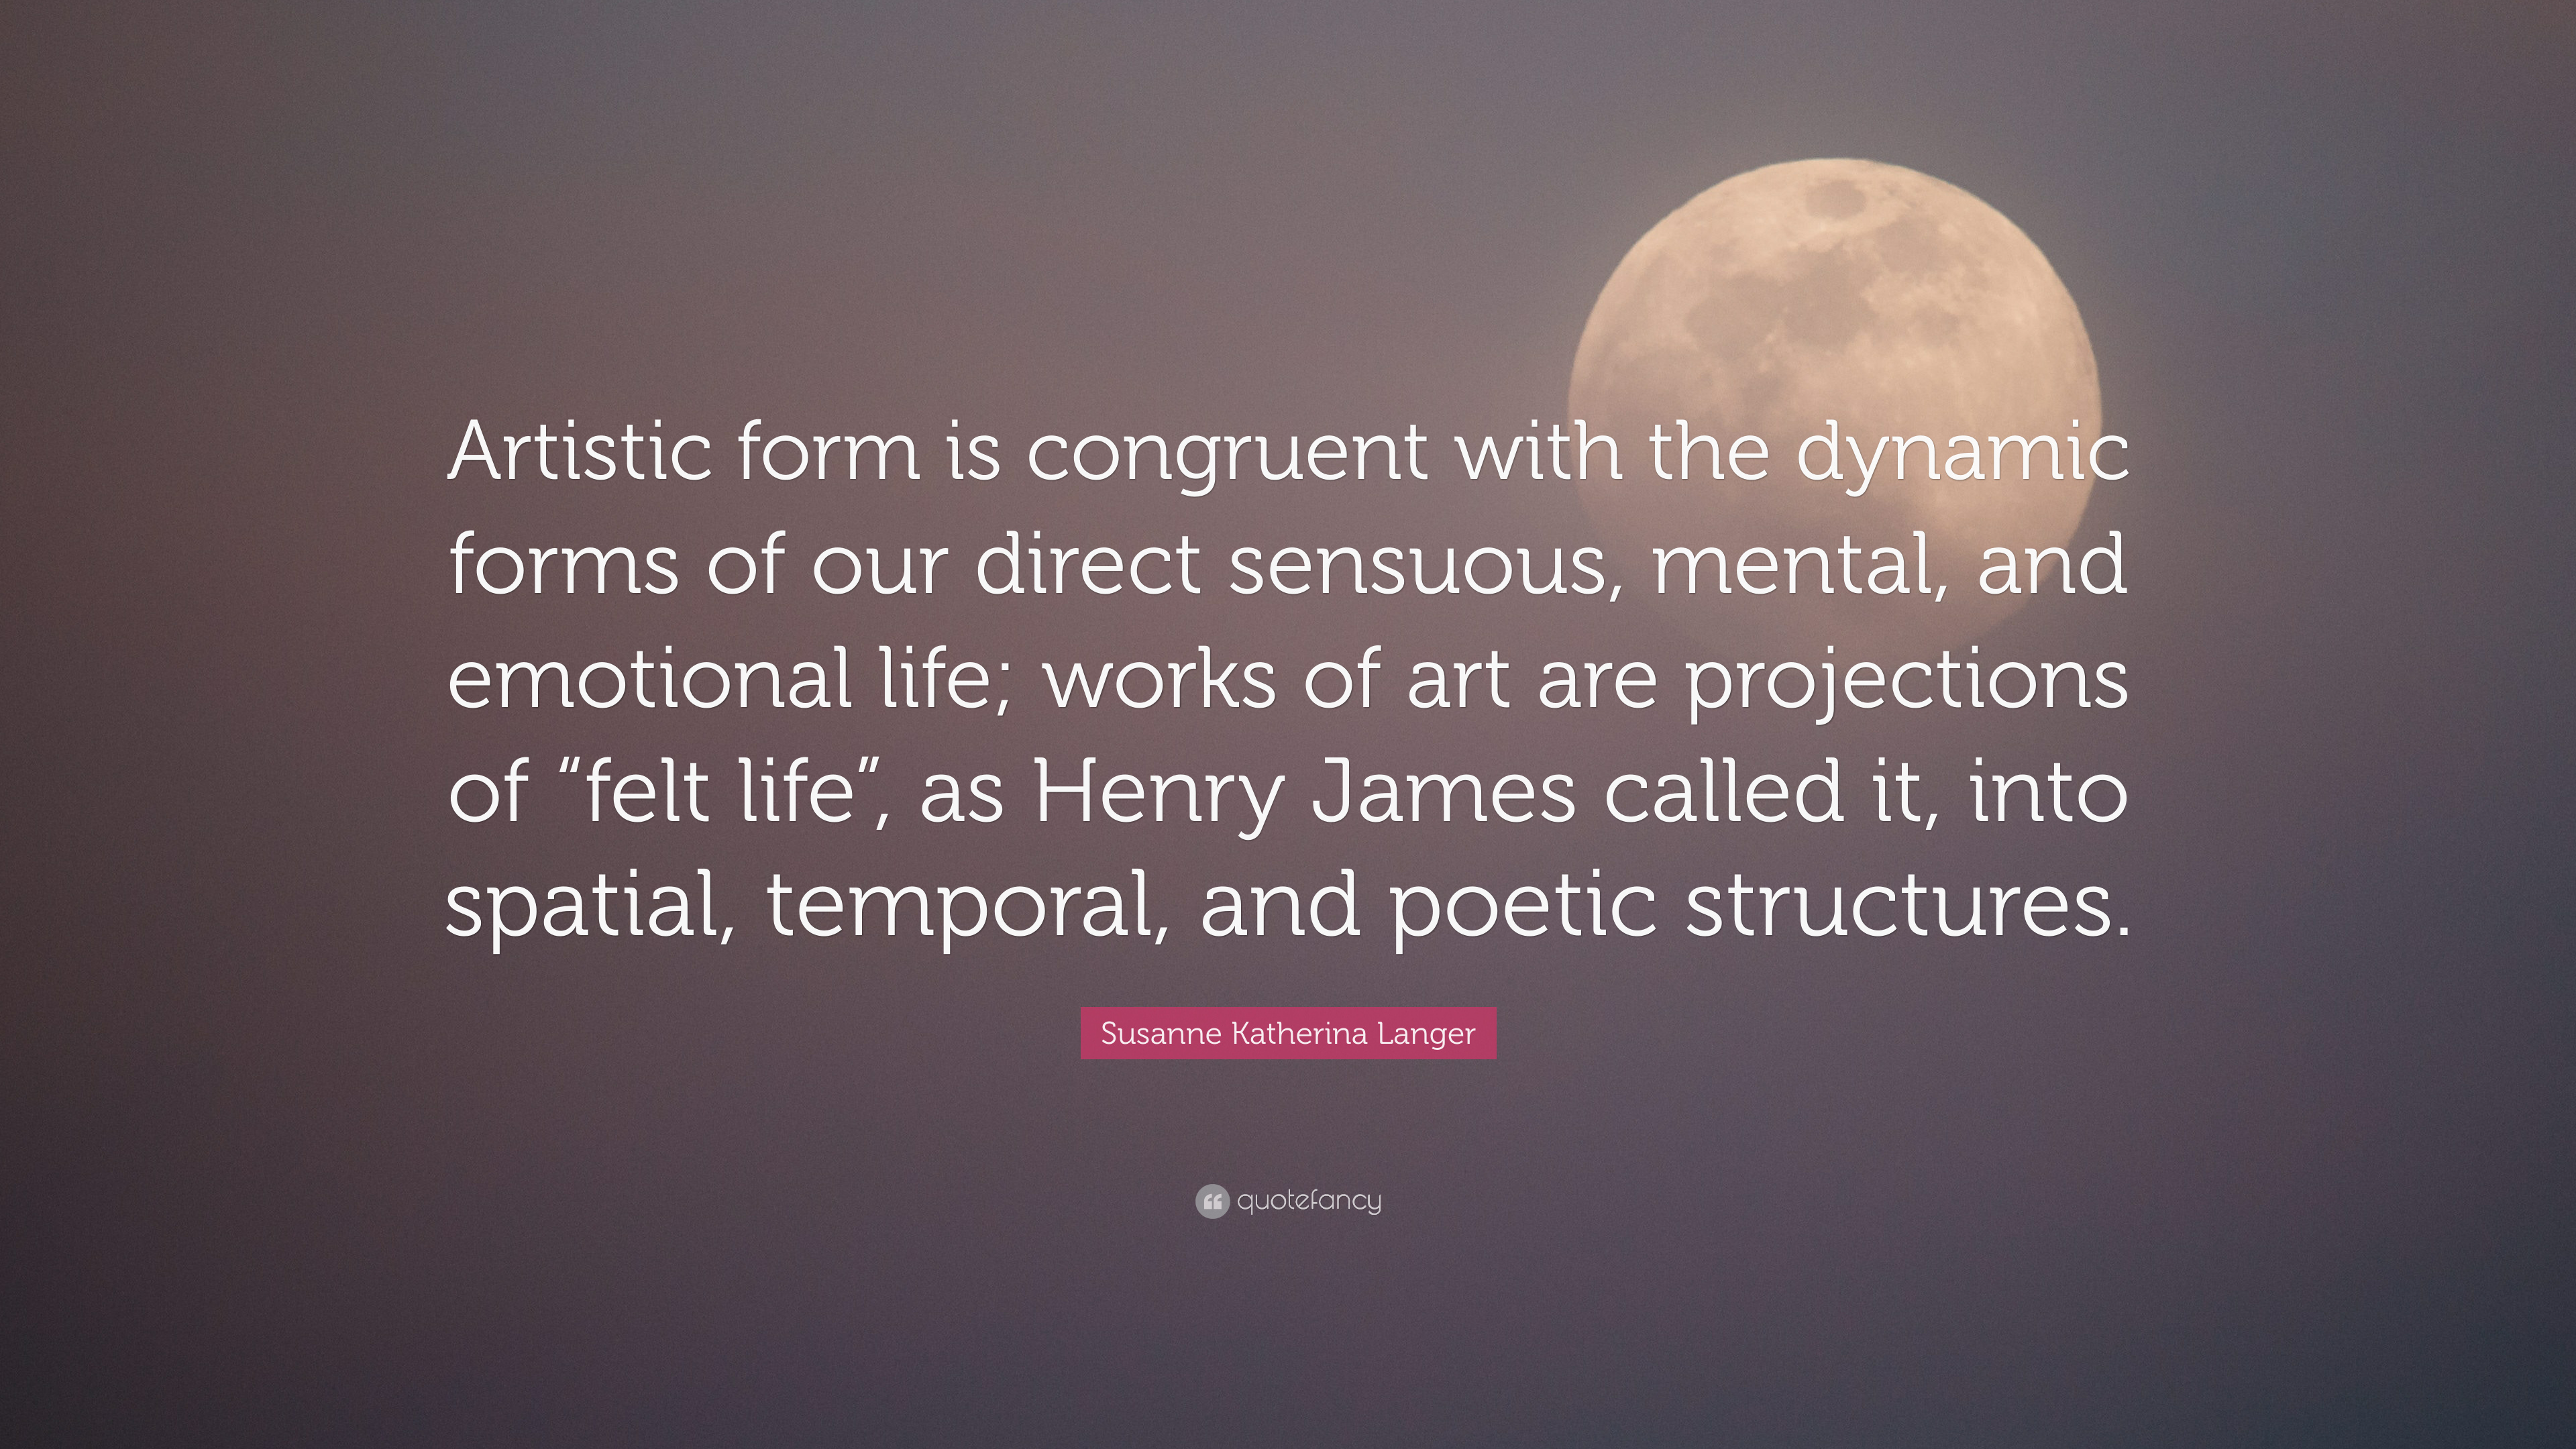 Susanne Katherina Langer Quote Artistic Form Is Congruent With The Dynamic Forms Of Our Direct Sensuous Mental And Emotional Life Works Of Art Are P 7 Wallpapers Quotefancy